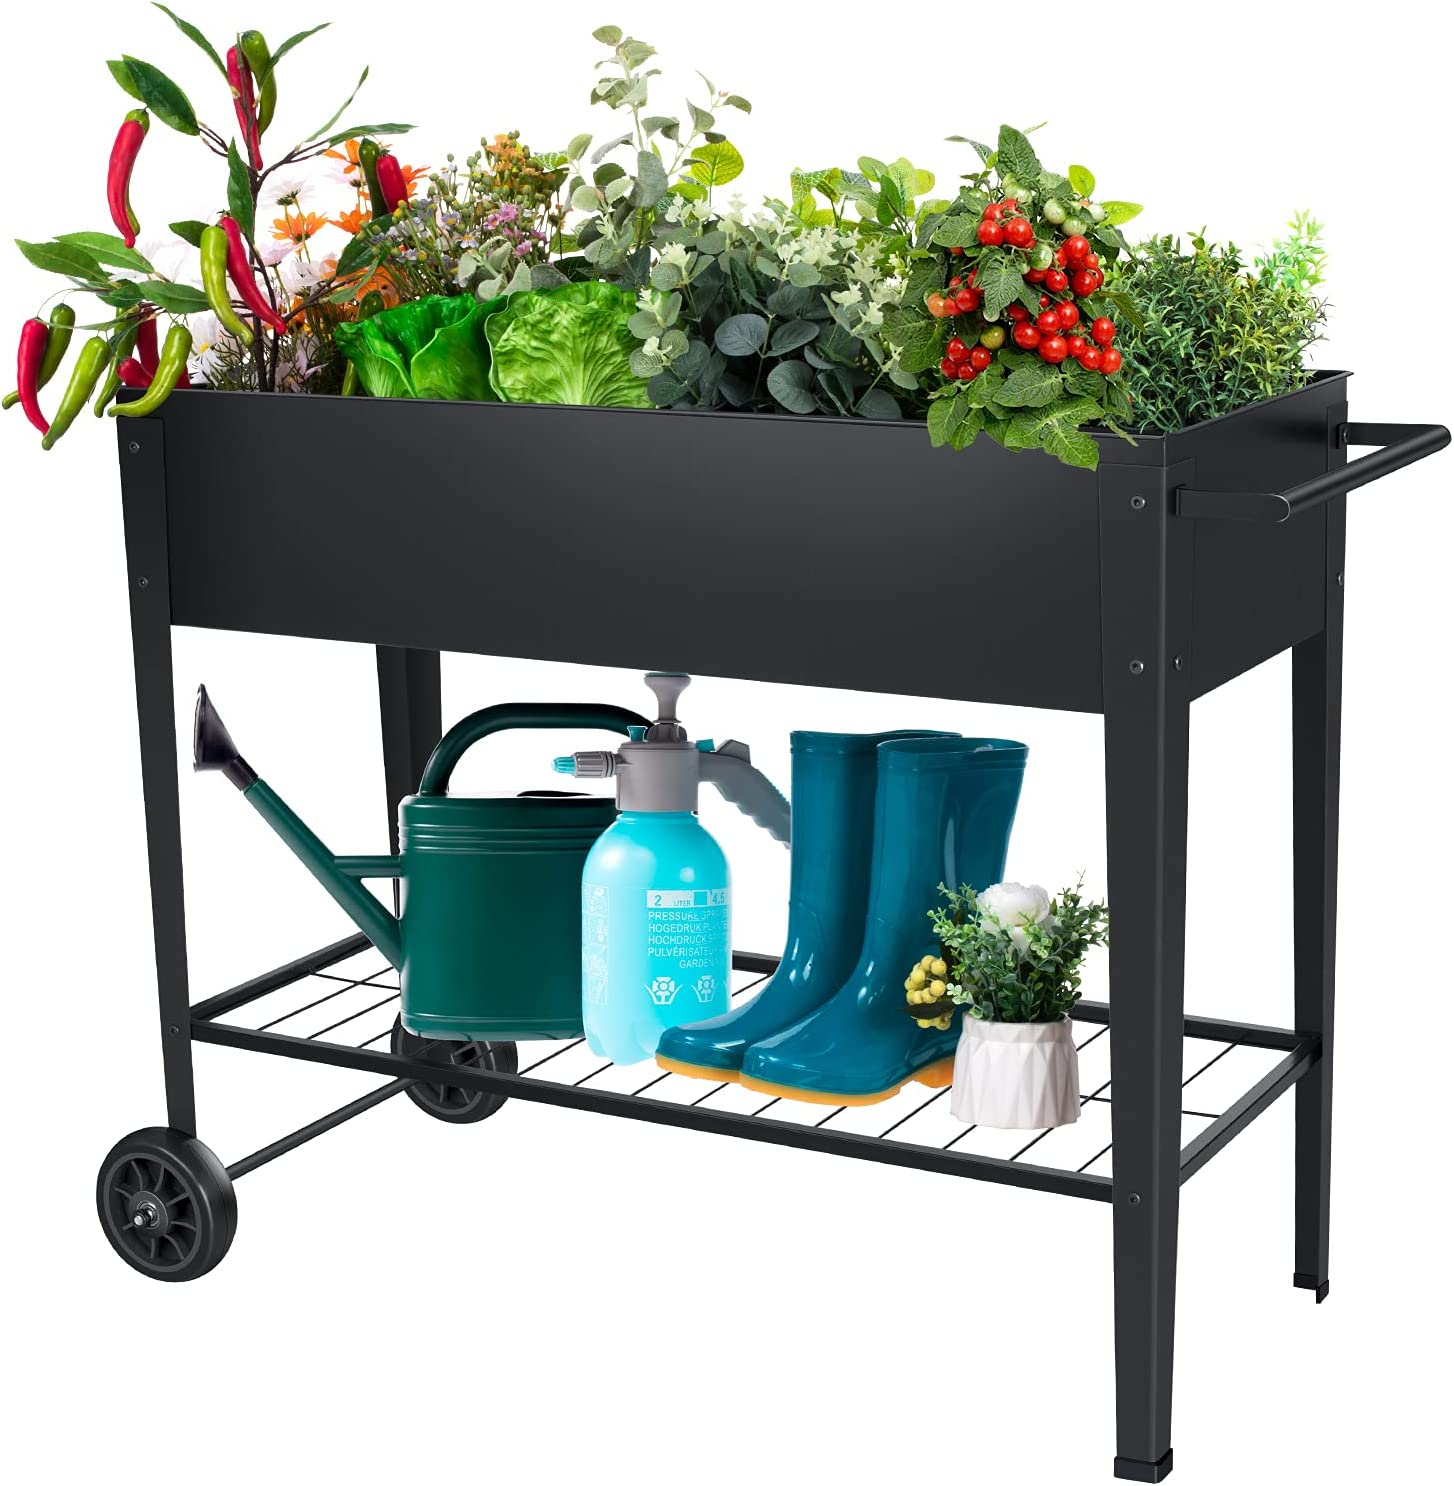 FXW Raised Garden Bed, Ergonomic Metal Garden Boxes with Legs on Wheels, Mobile Planter Boxes Outdoor Stand for Vegetables Flowers Herb Garden Patio Apartment Backyard Balcony